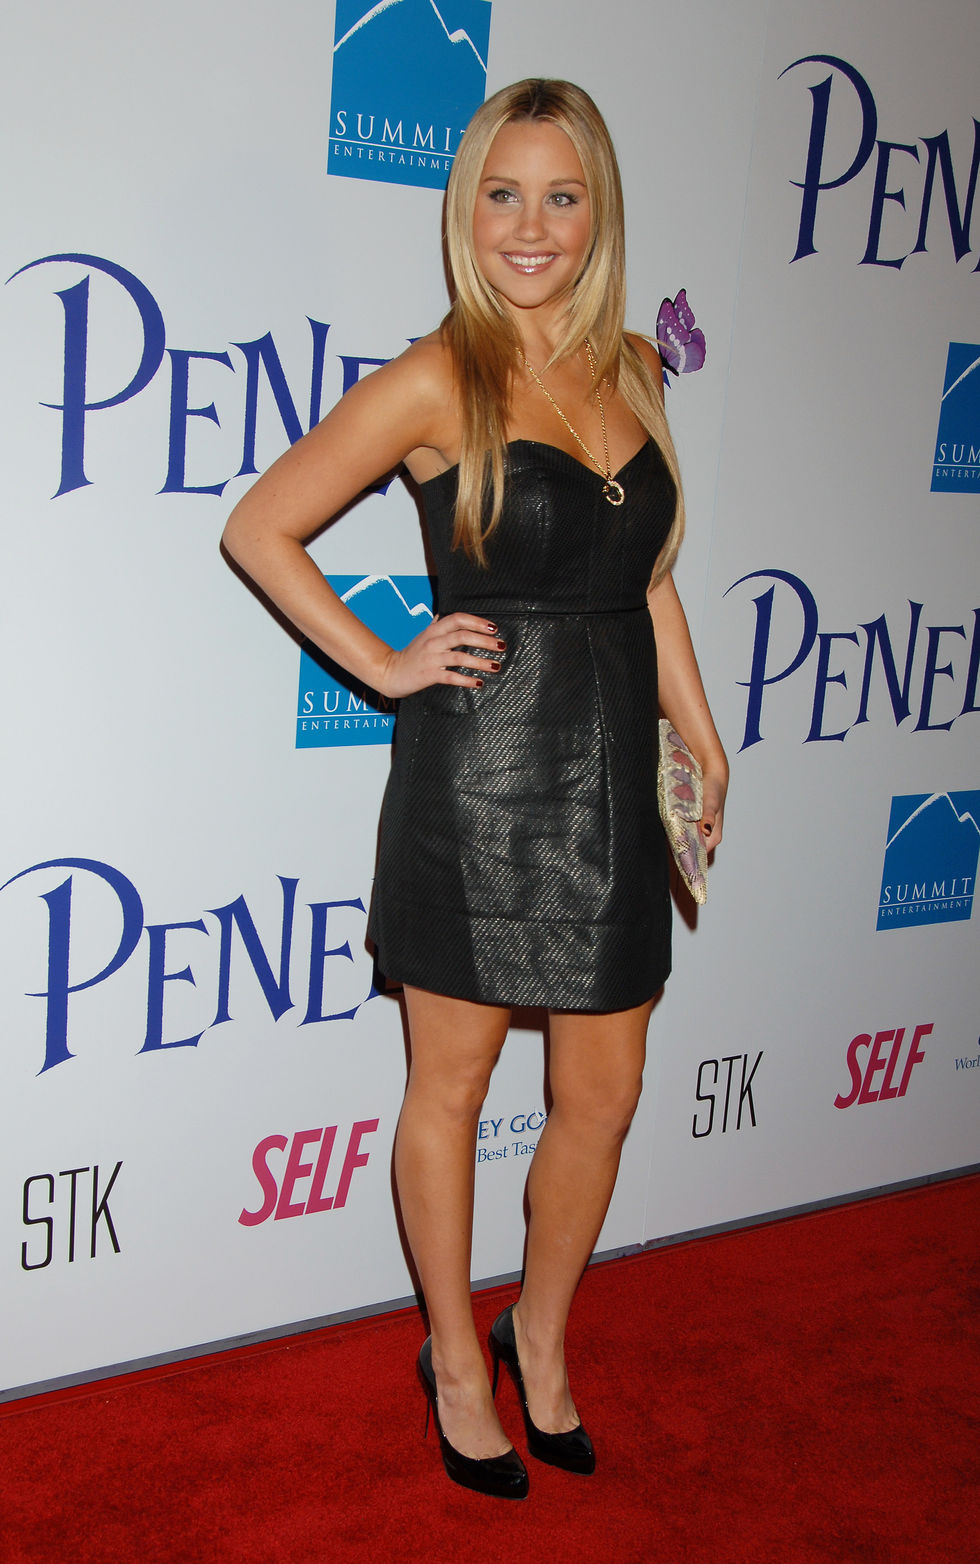 amanda-bynes-and-christina-ricci-penelope-premiere-in-los-angeles-01